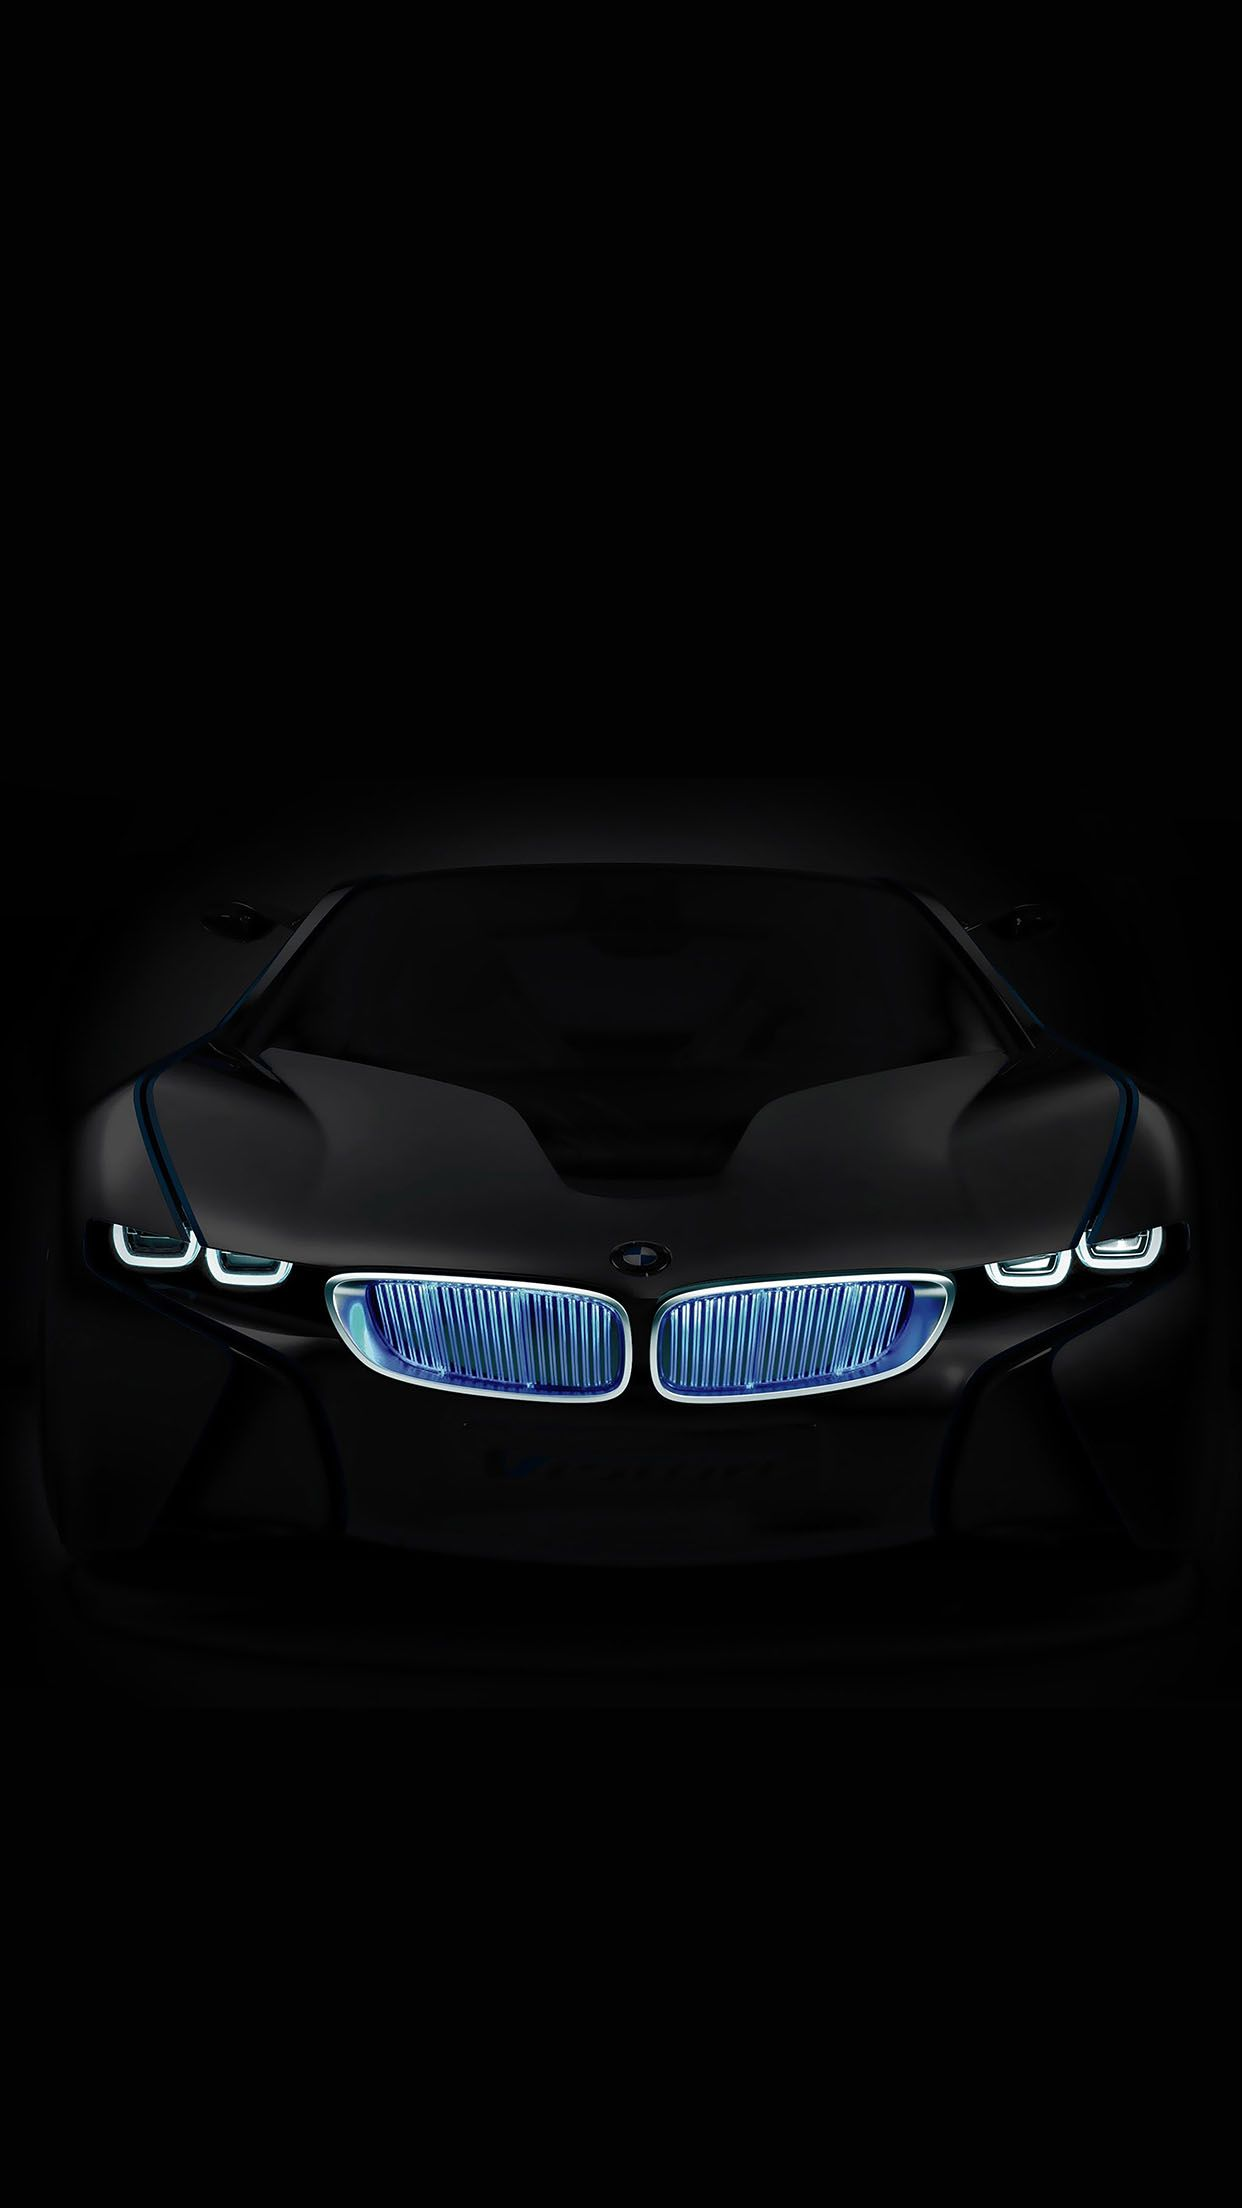 bmw m concept design wallpaper concept cars wallpapers hd wallpapers